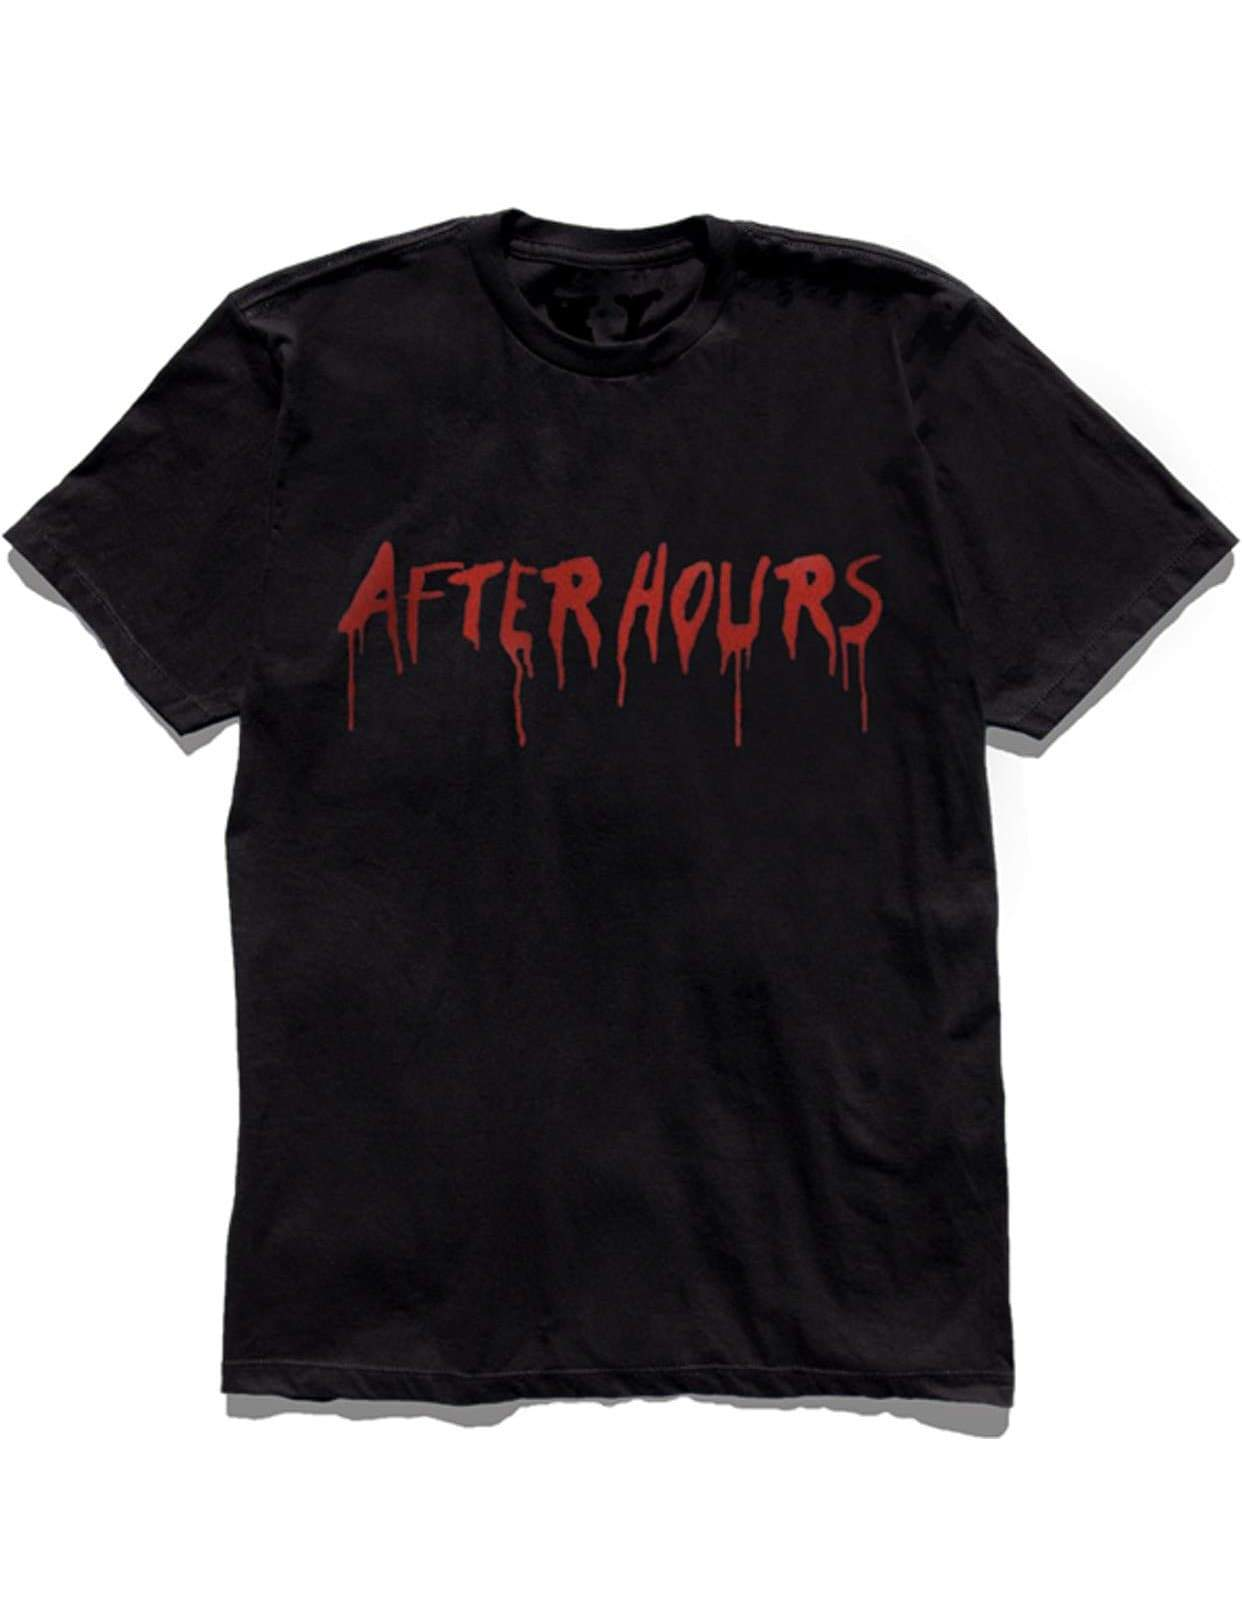 The Weeknd x Vlone AfterHours Blood Drip Tee (Blk/Red) /D11